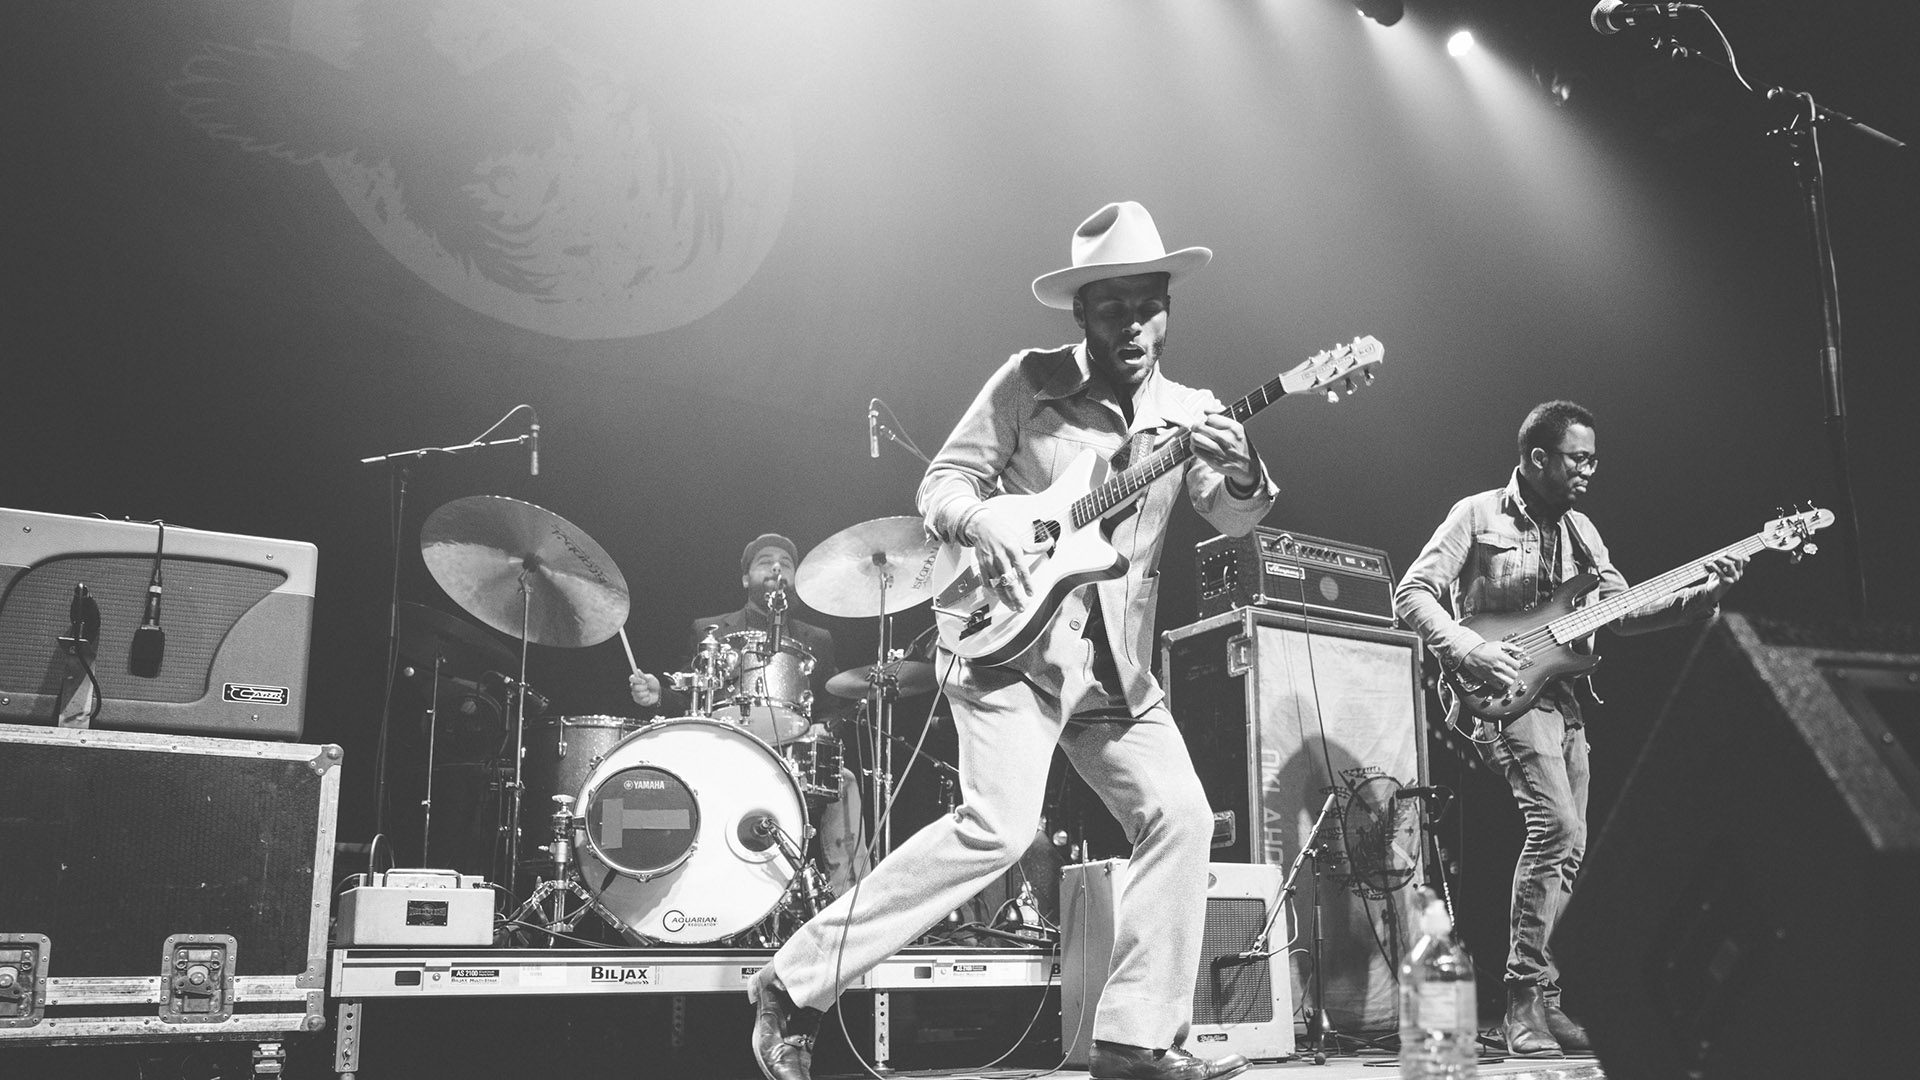 Charley Crockett on his journey from street performer to Texas blues star